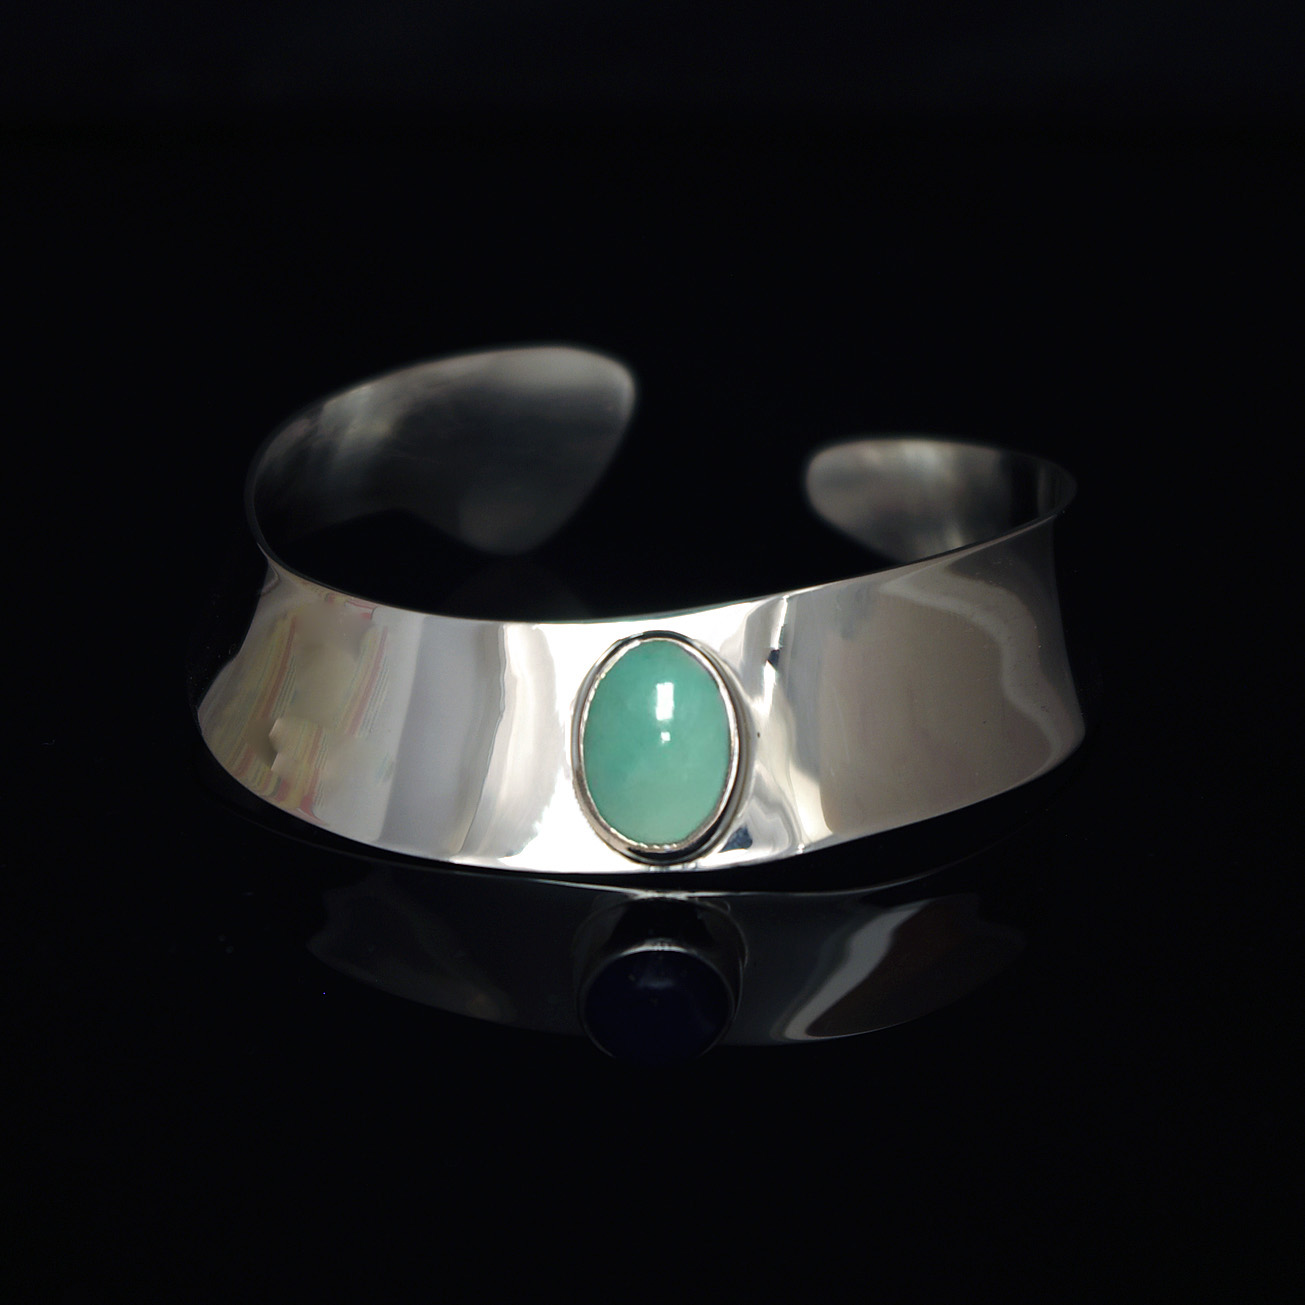 Turquoise Modernist Cuff Bracelet